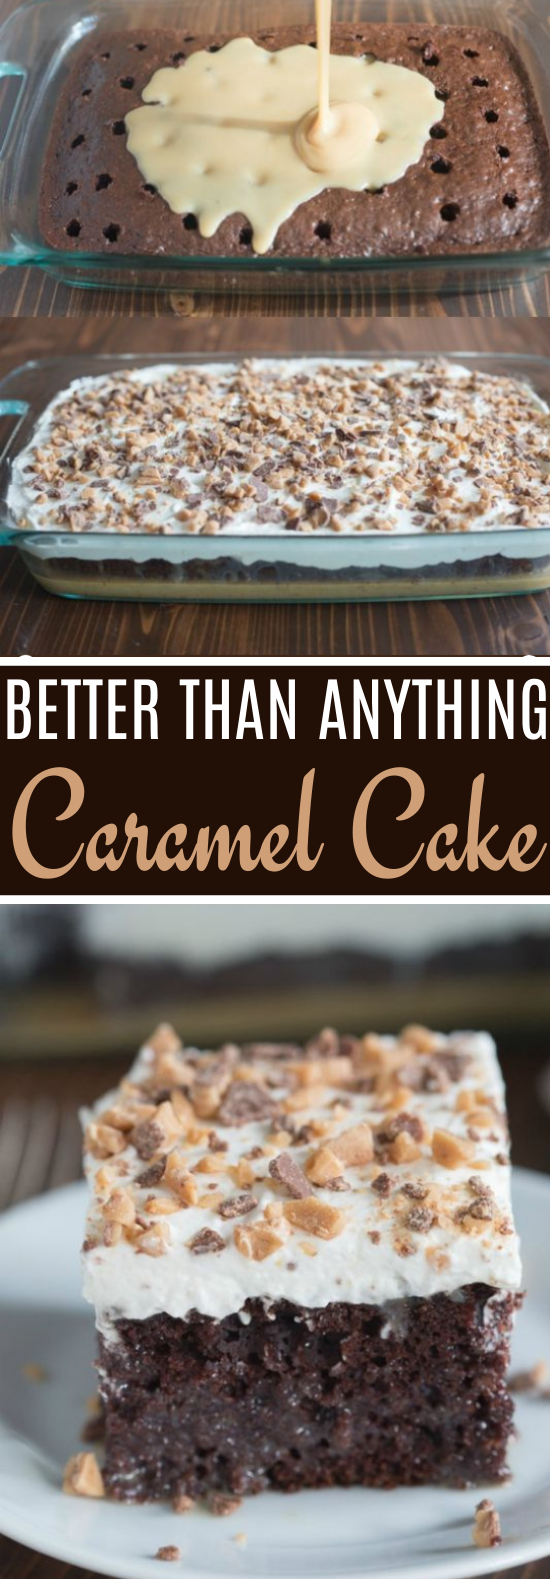 Better than Anything Cake #desserts #cake #baking #chocolate #easy